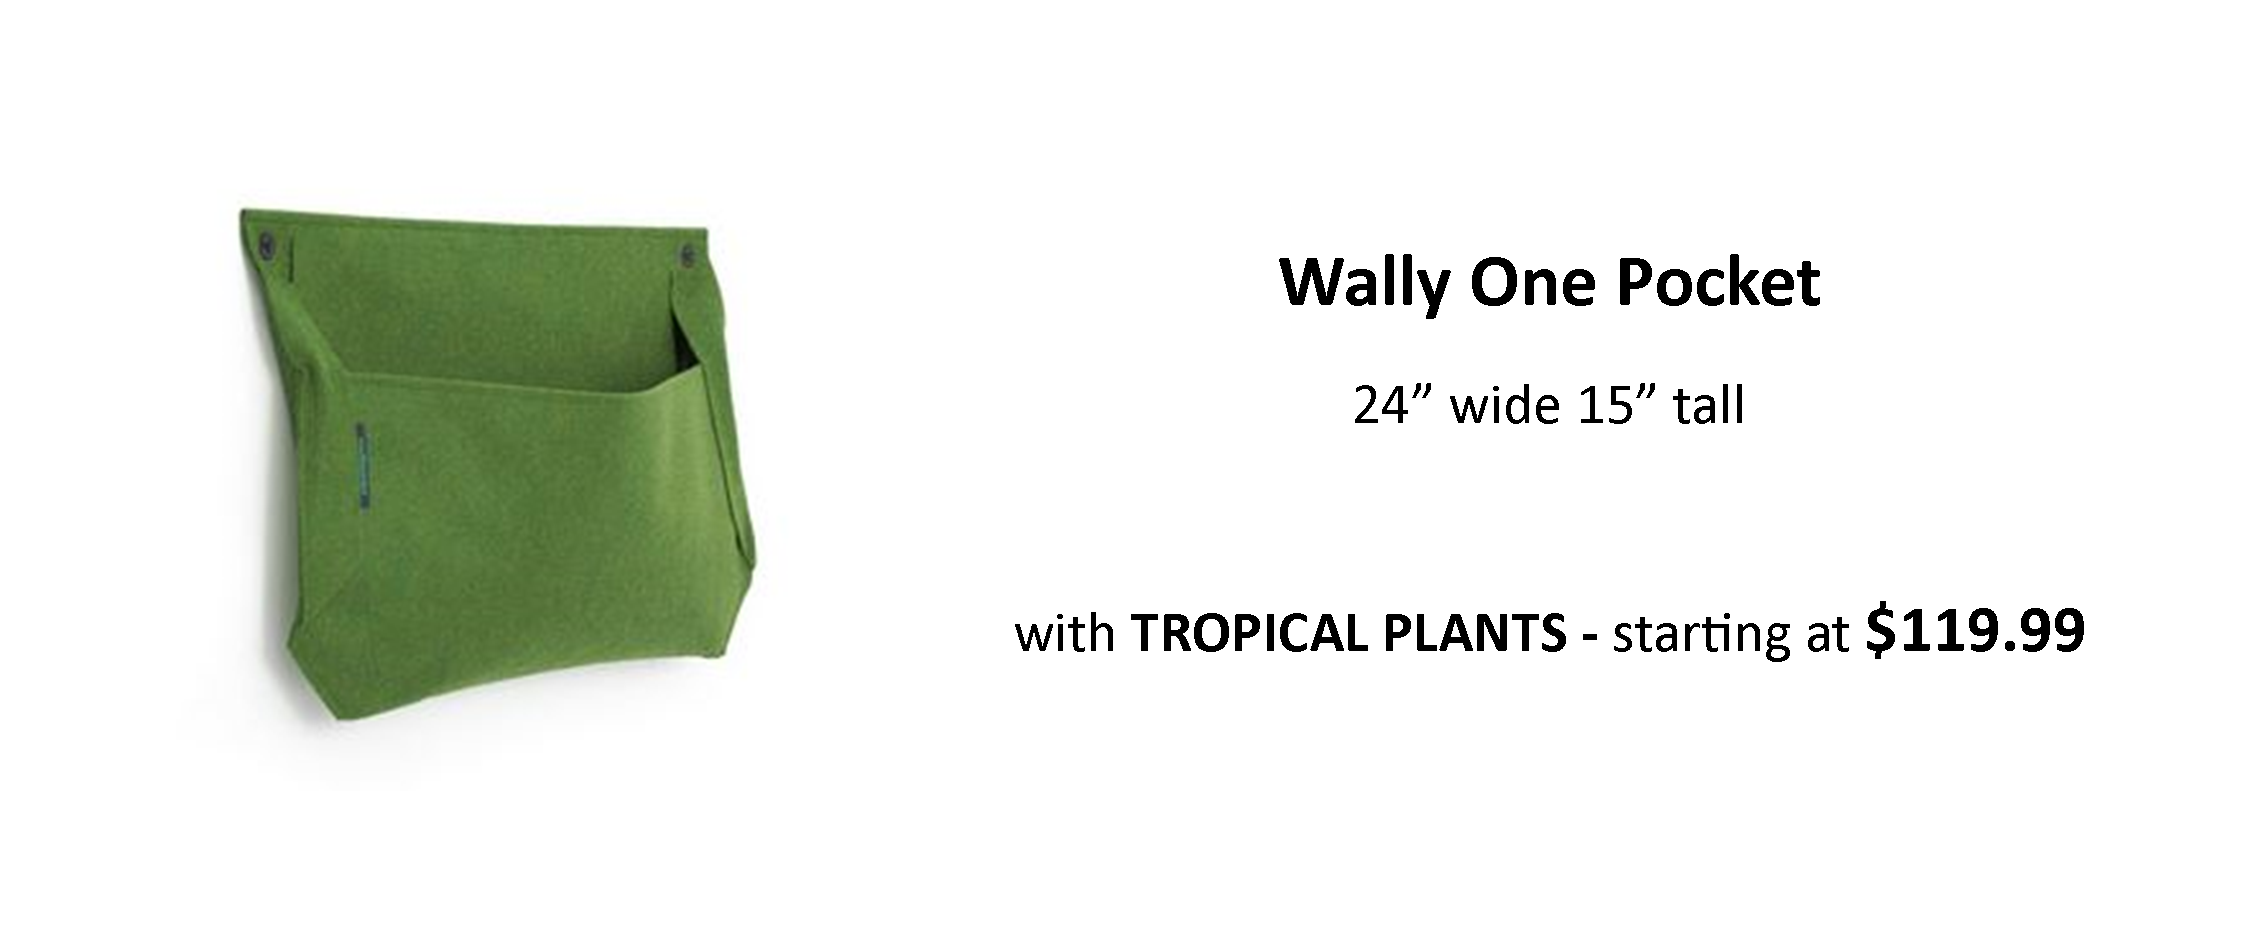 Woolly Pocket Wally One Vertical Garden Planter with Tropical Plants on Indoor or Outdoor Walls